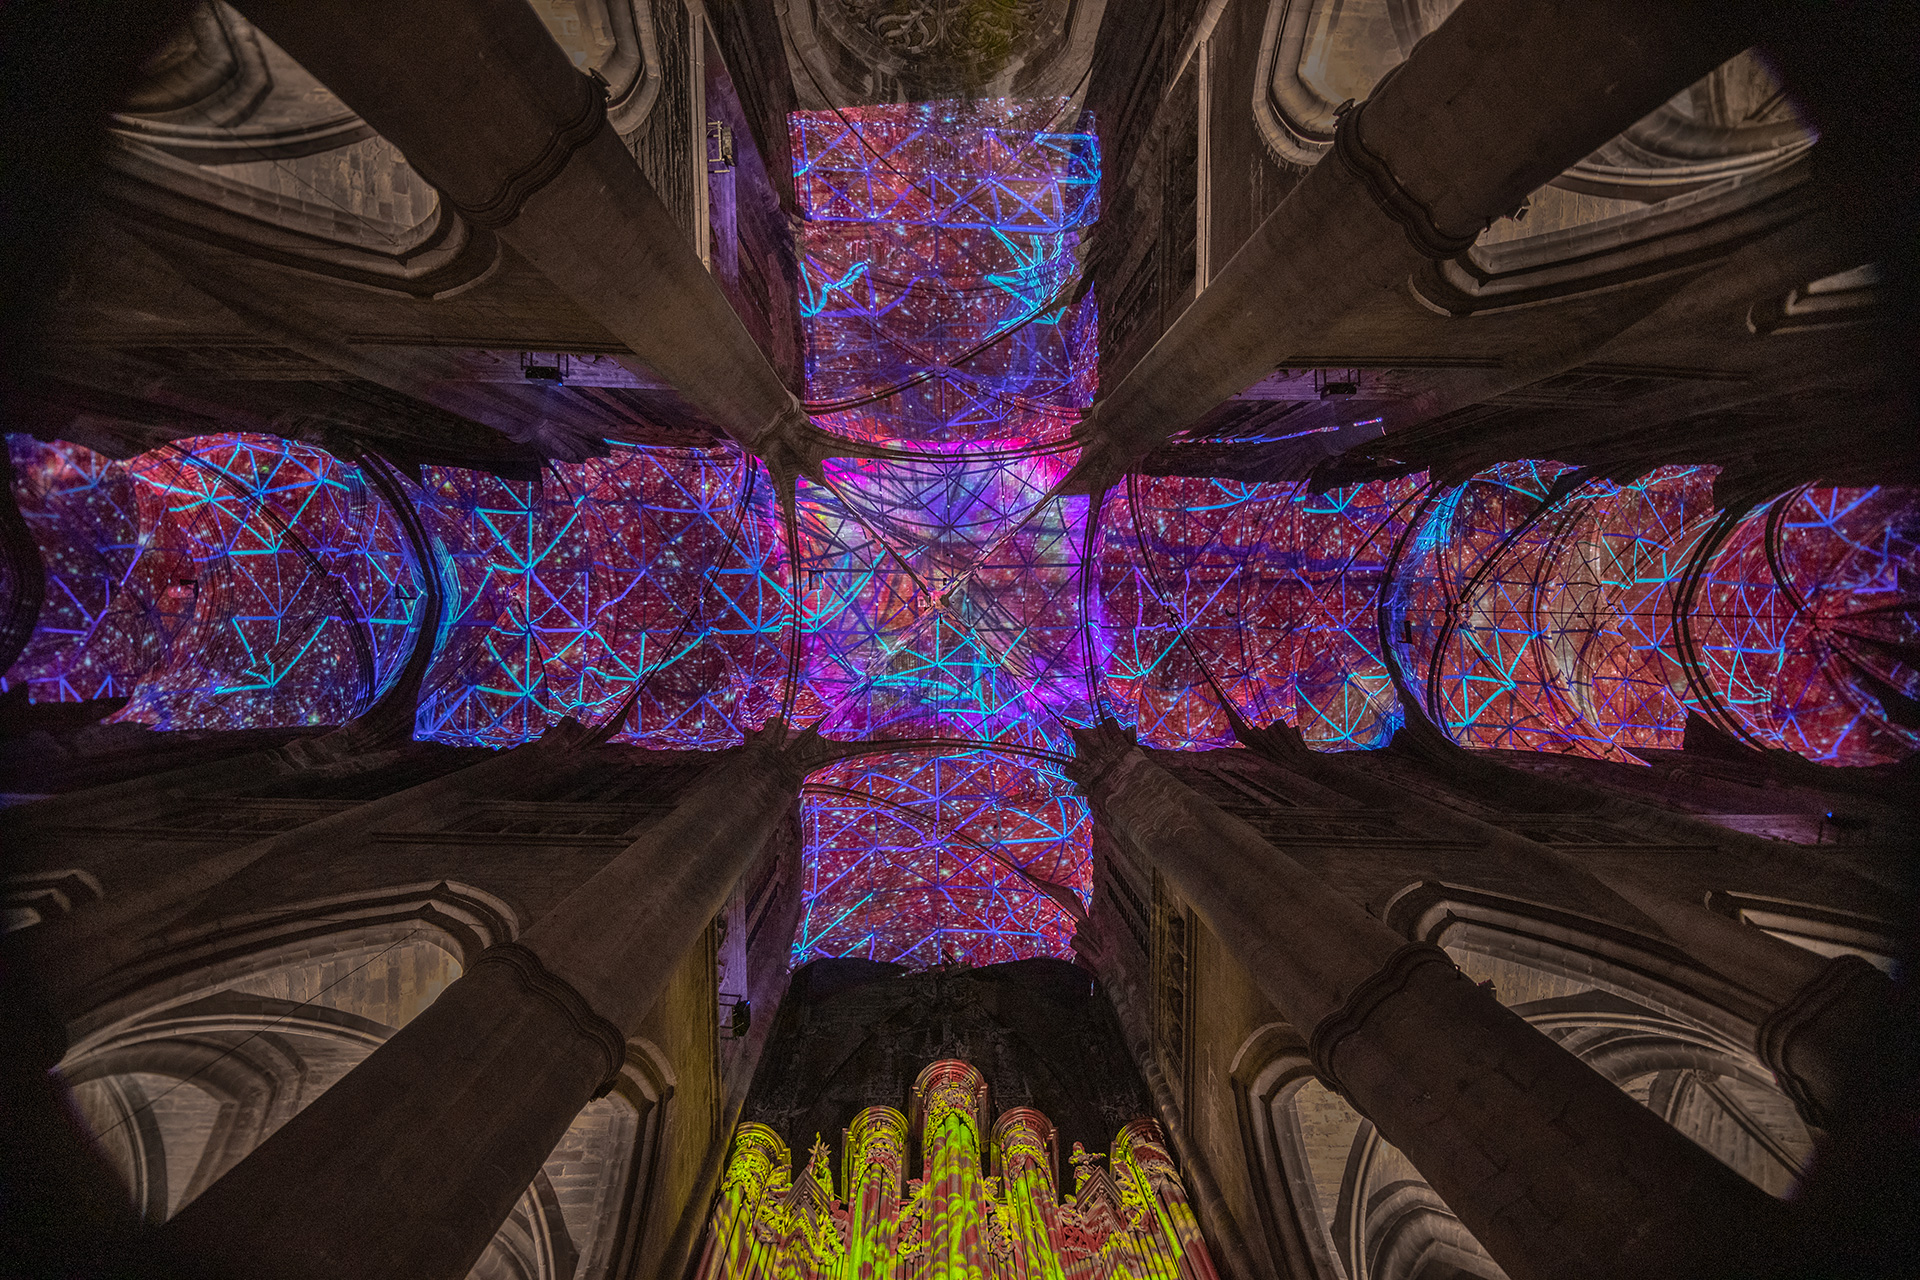 'Digital Supernova' (2019), a generative virtual-reality installation by Chevalier at Notre Dame Cathedral | Digital Supernova | Miguel Chevalier | STIRworld